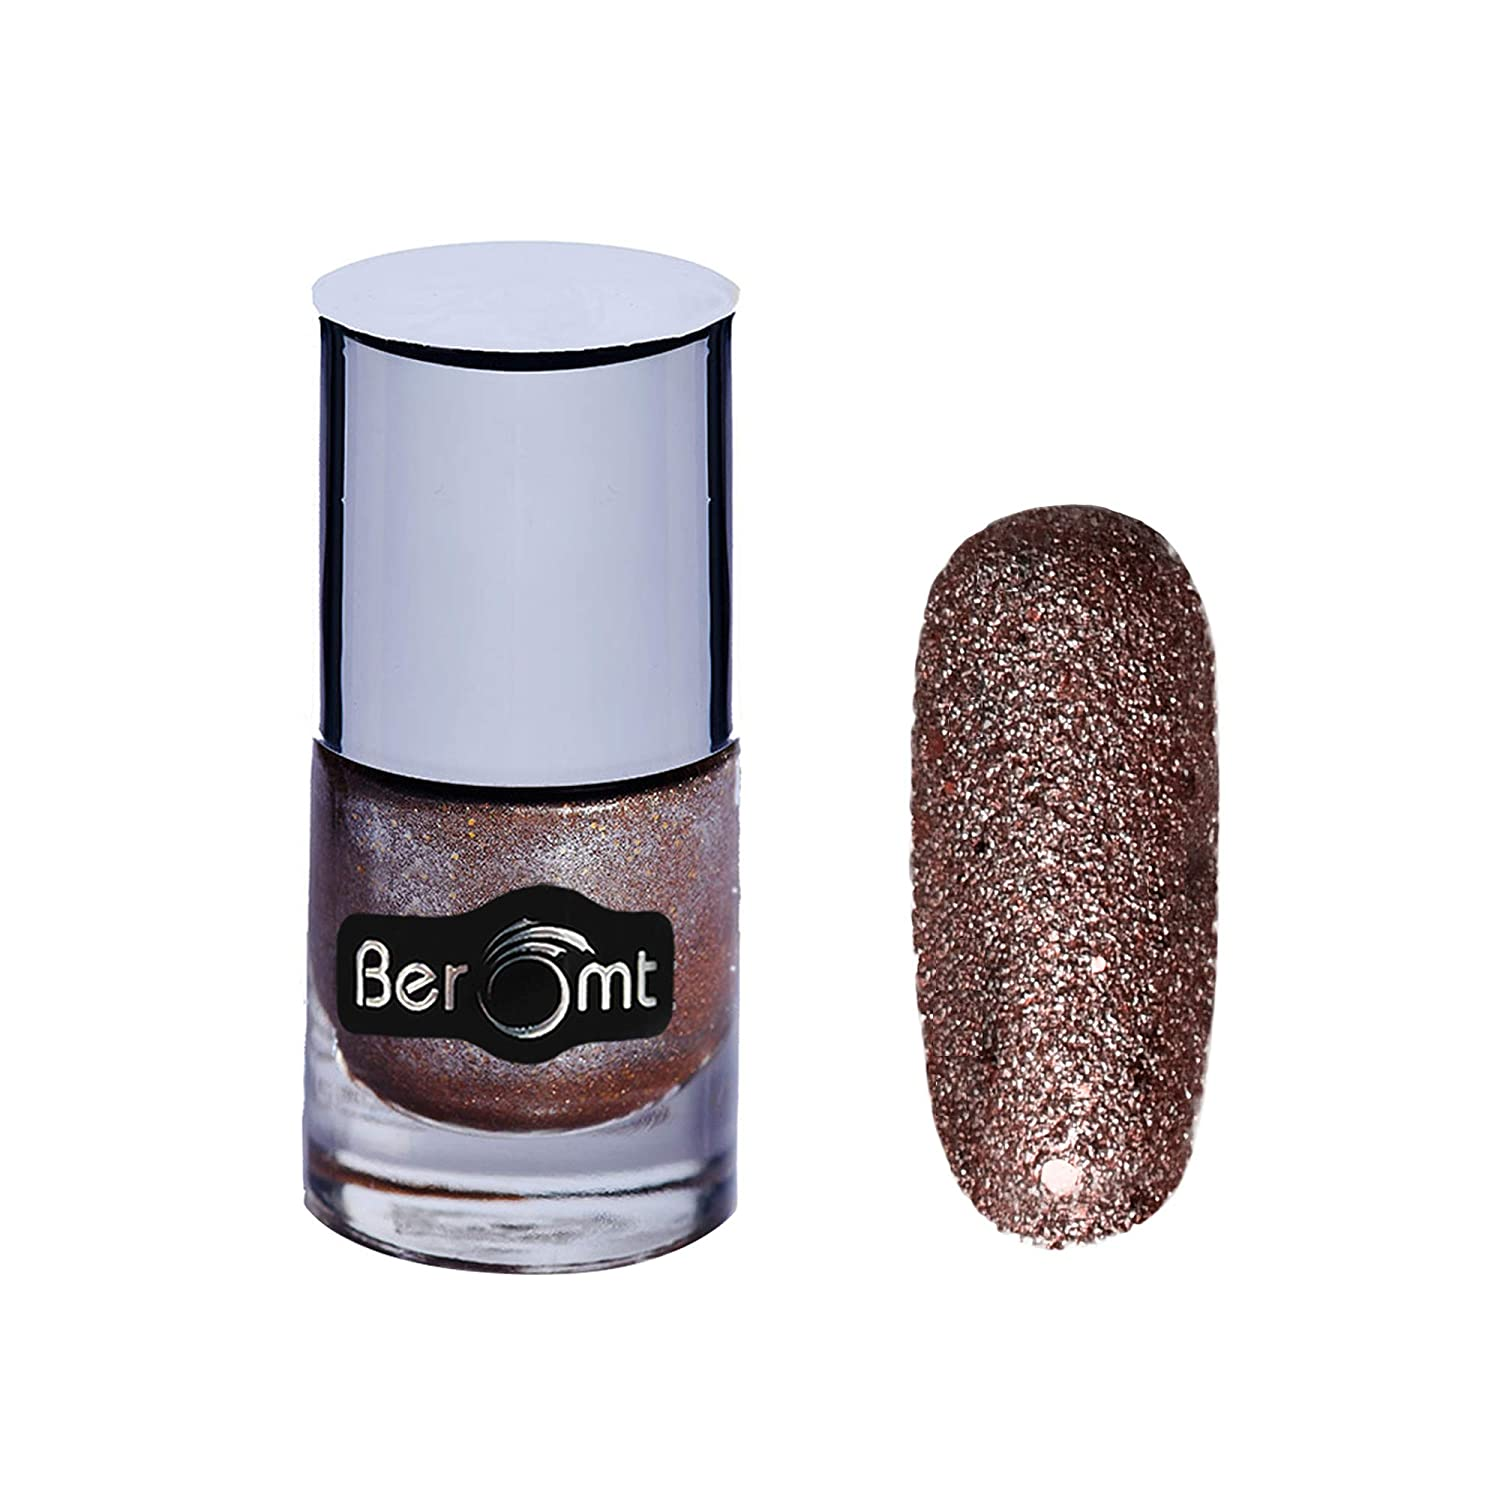 Buy Beromt Sand Nail Polish Gold Leaf 601, 10ml Online at Low Prices ...